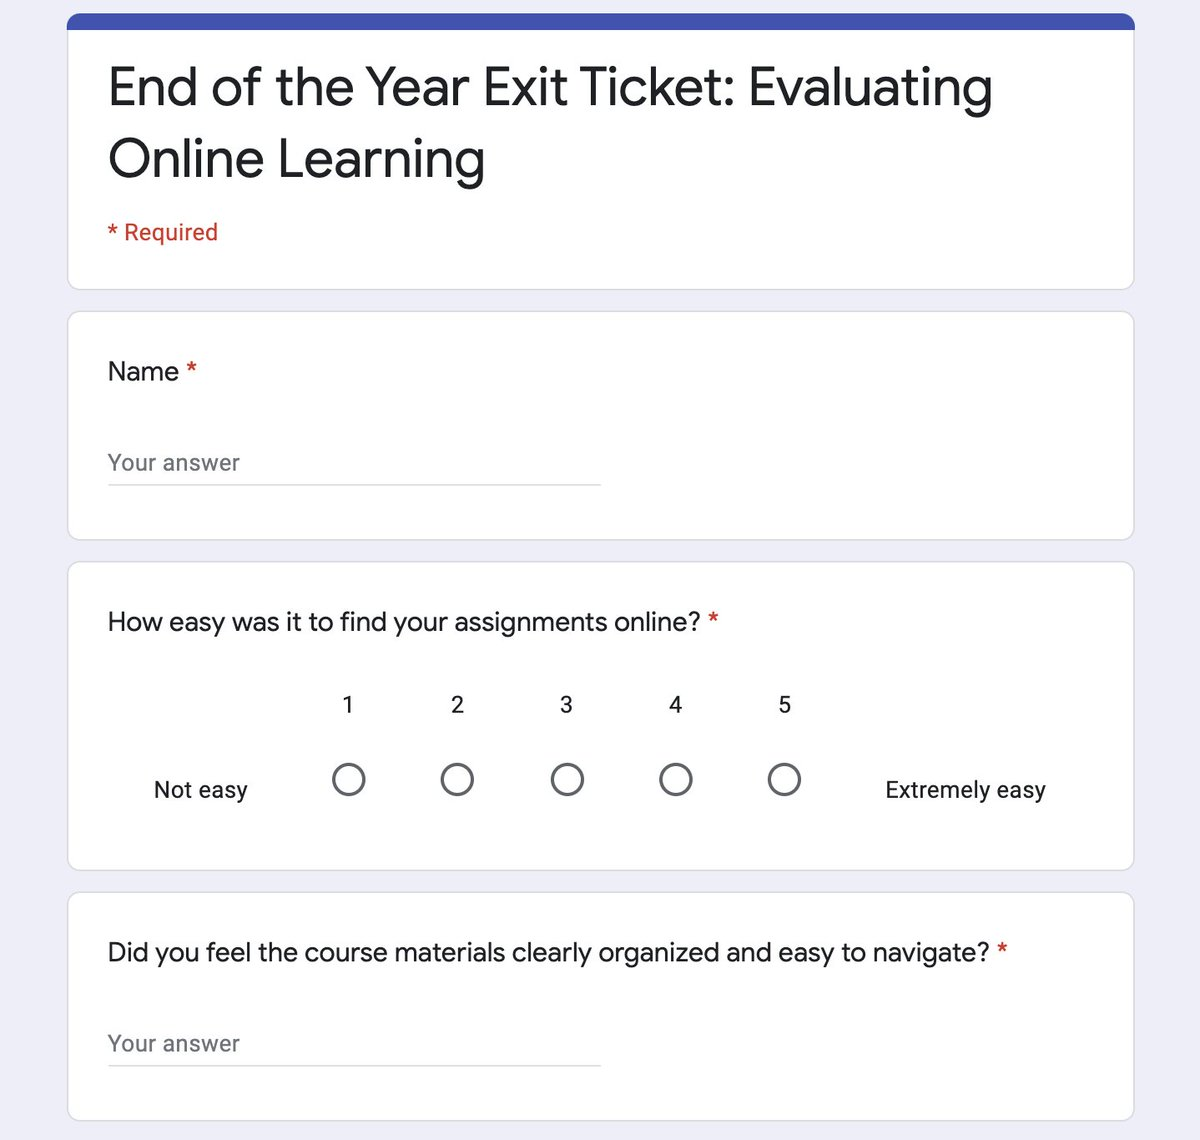 Collecting #feedback from #students is one of the best ways for #teachers to continue #learning & growing! Don't miss this chance to learn from your students. End of the Year Exit Ticket: Evaluating Online Learning catlintucker.com/2020/05/evalua… #edchat #CAedchat #CUEchat